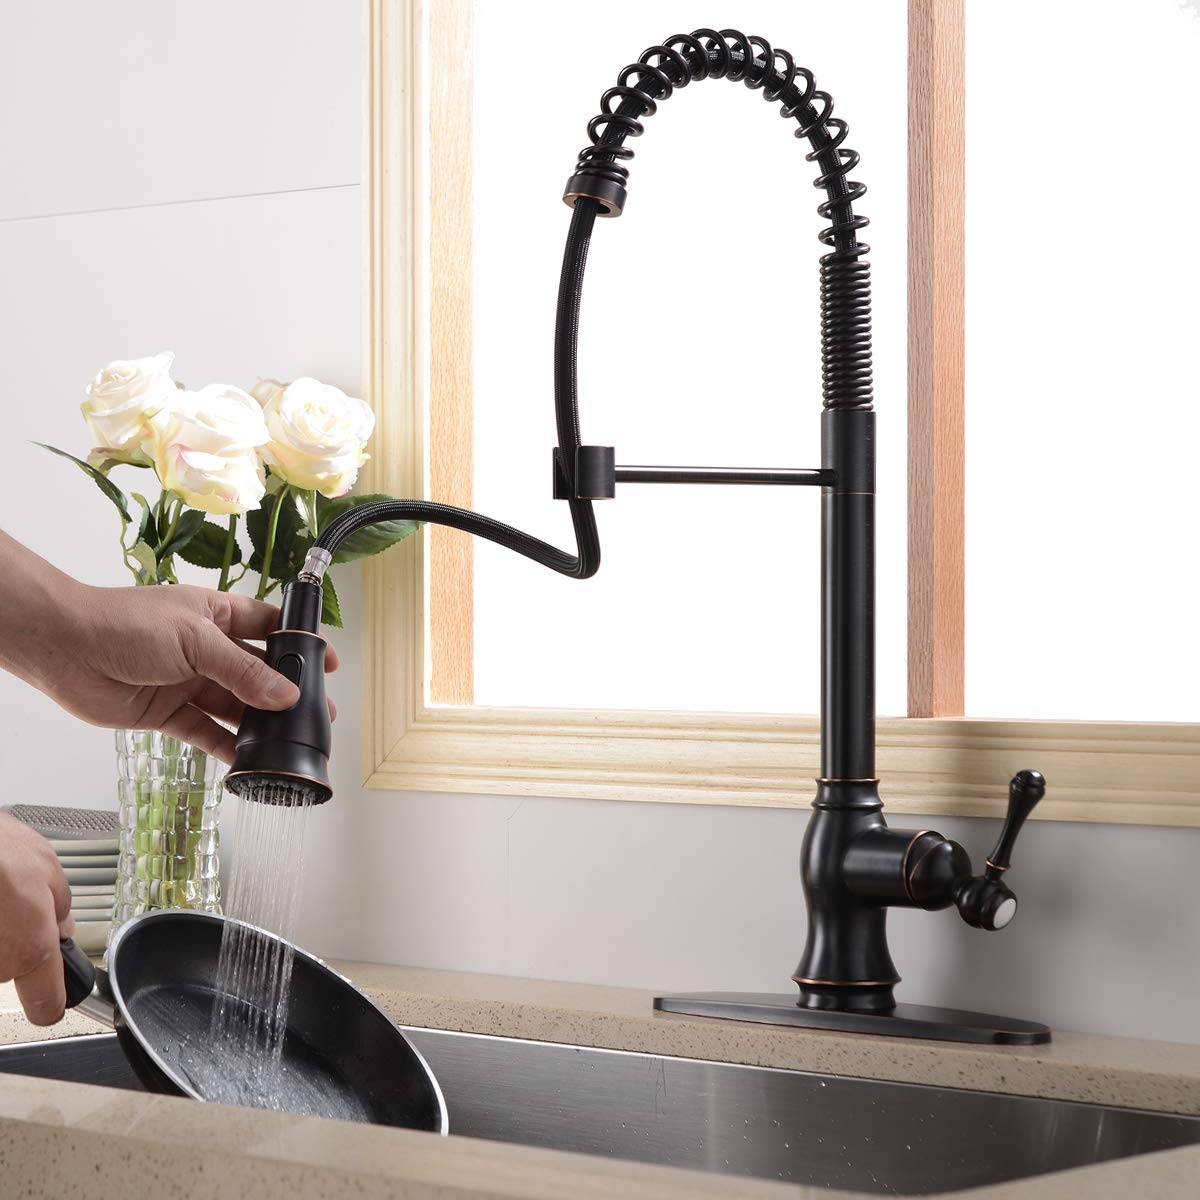 Antique Spring Single Handle Pull Down Sprayer Oil Rubbed Bronze Kitchen Faucet, Kitchen Faucet Bronze With Deck Plate by SHACO (Image #4)